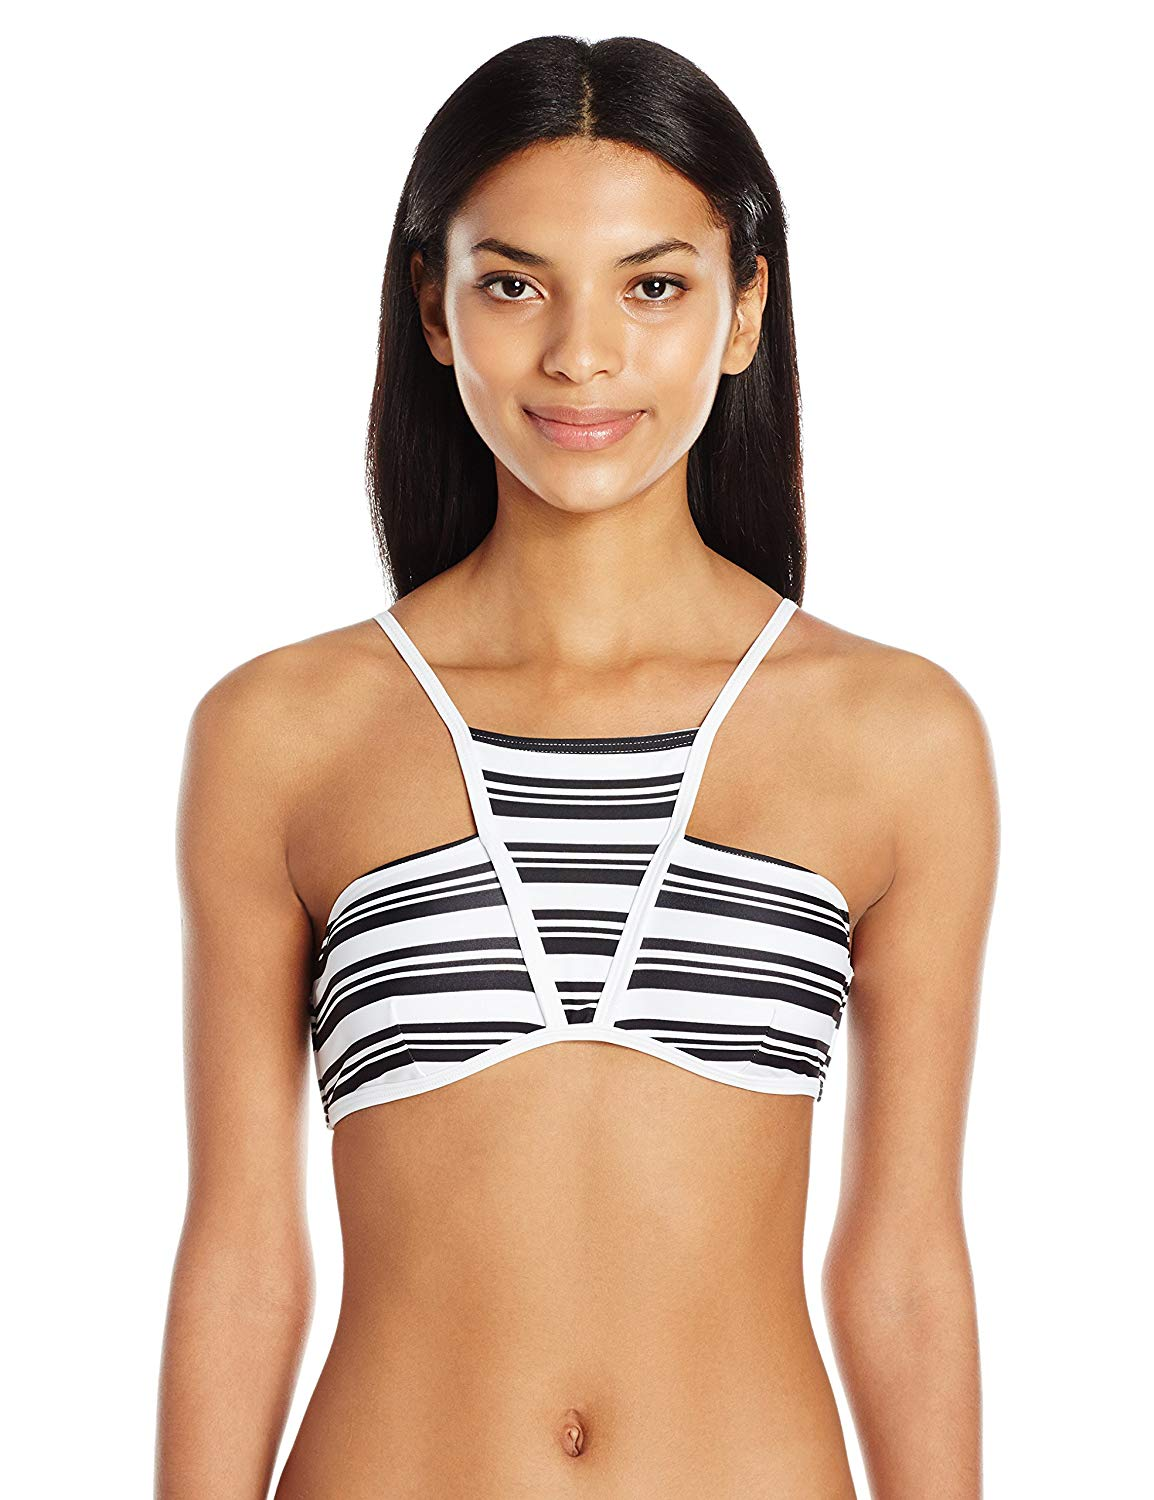 779577cb089 Get Quotations · MINKPINK Women's Show Your Stripes High Neck Bikini Top